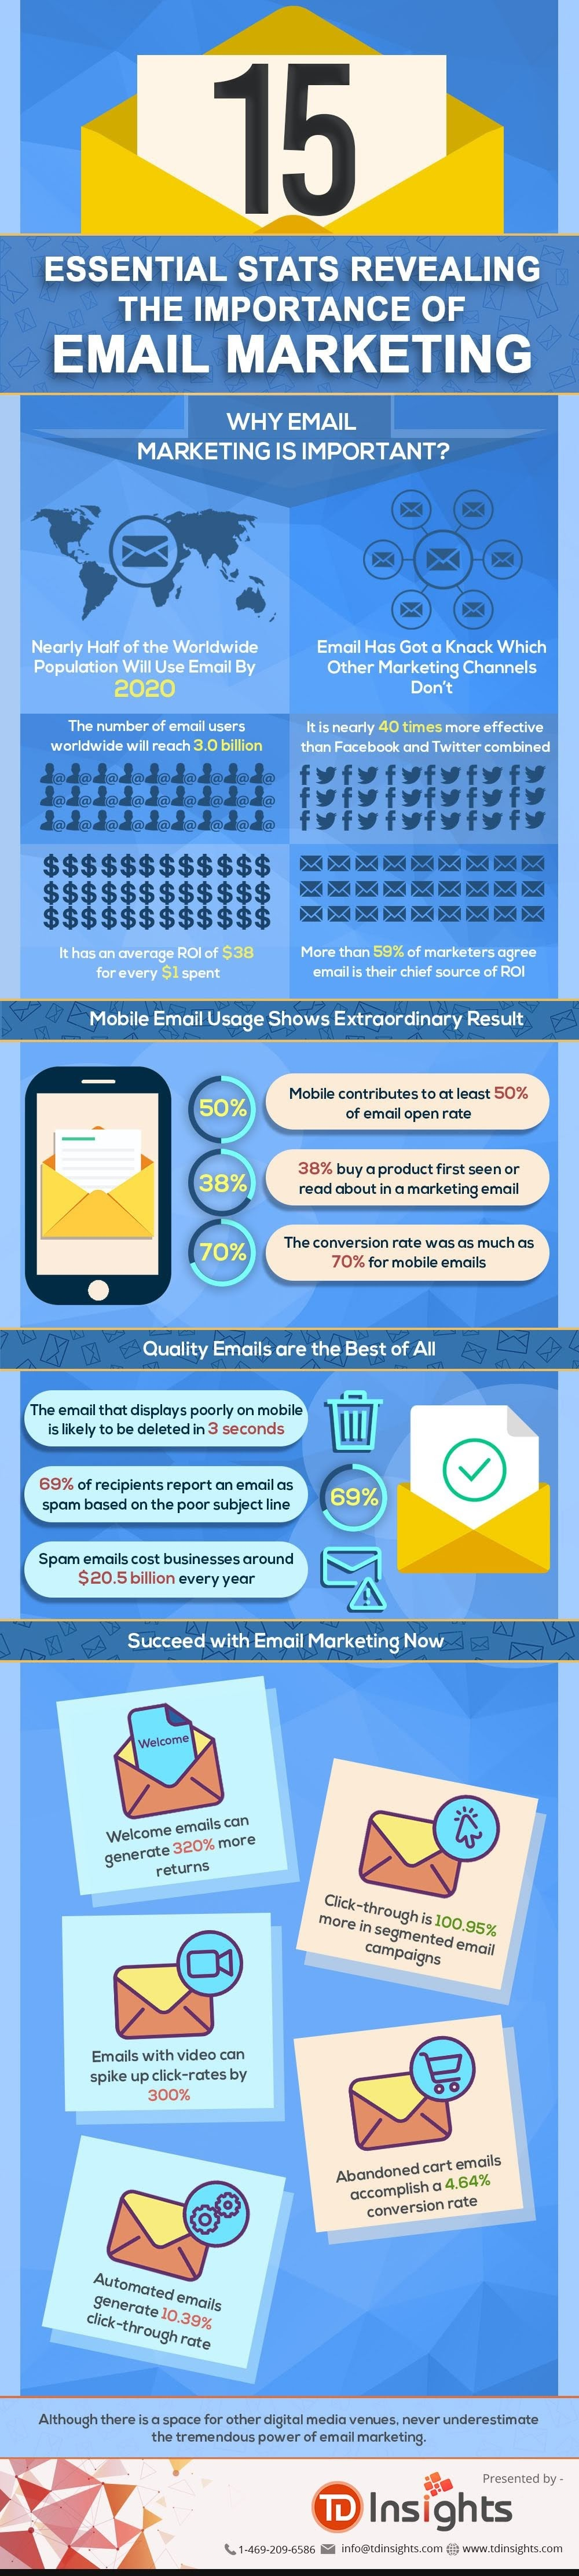 15 Essential Stats Revealing the Importance of Email Marketing #infographic